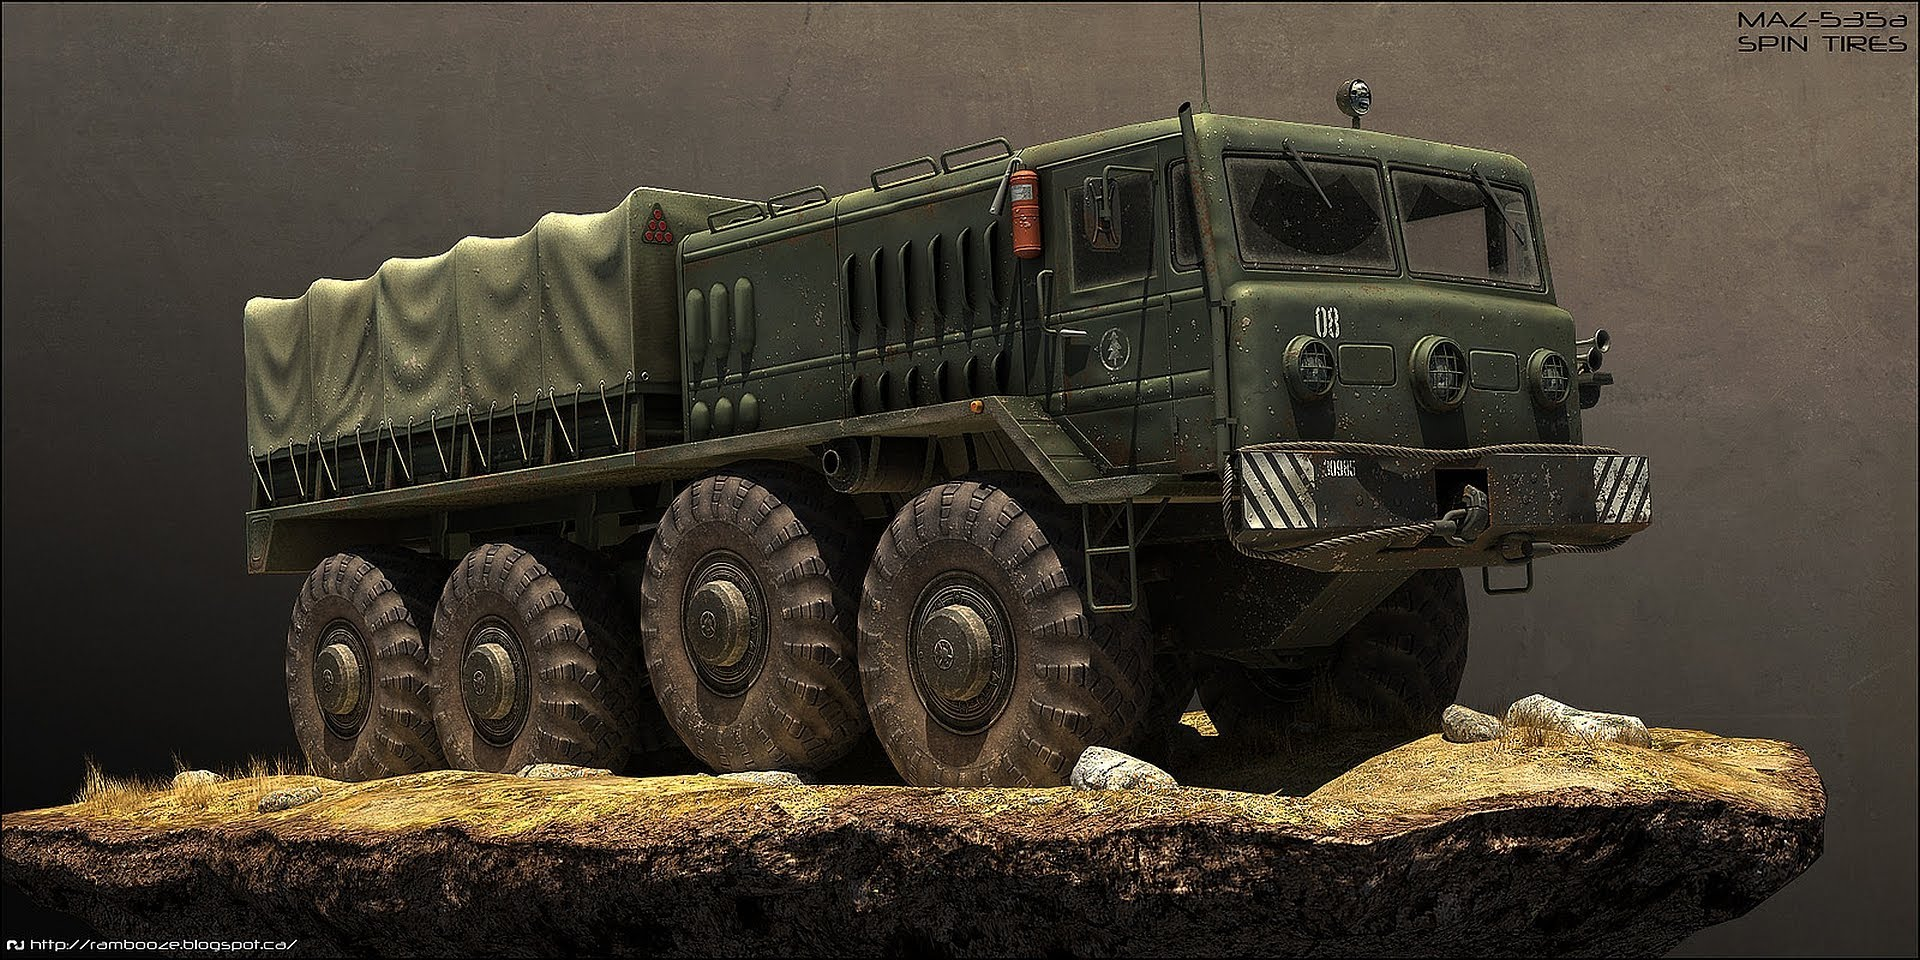 Technopat'tan Spintires İncelemesi!